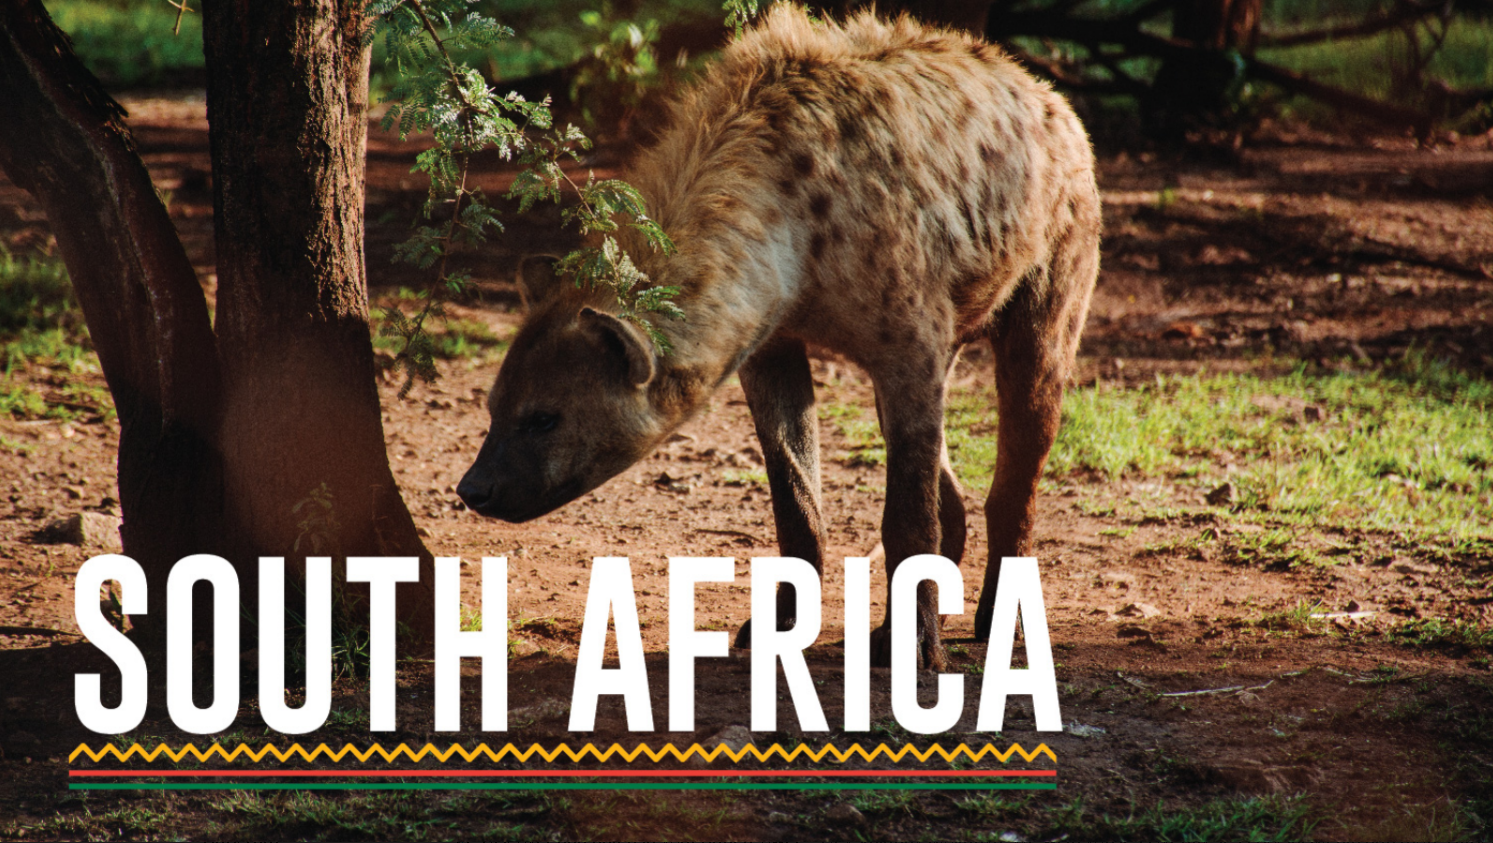 South Africa Luxury Safari Vacation package